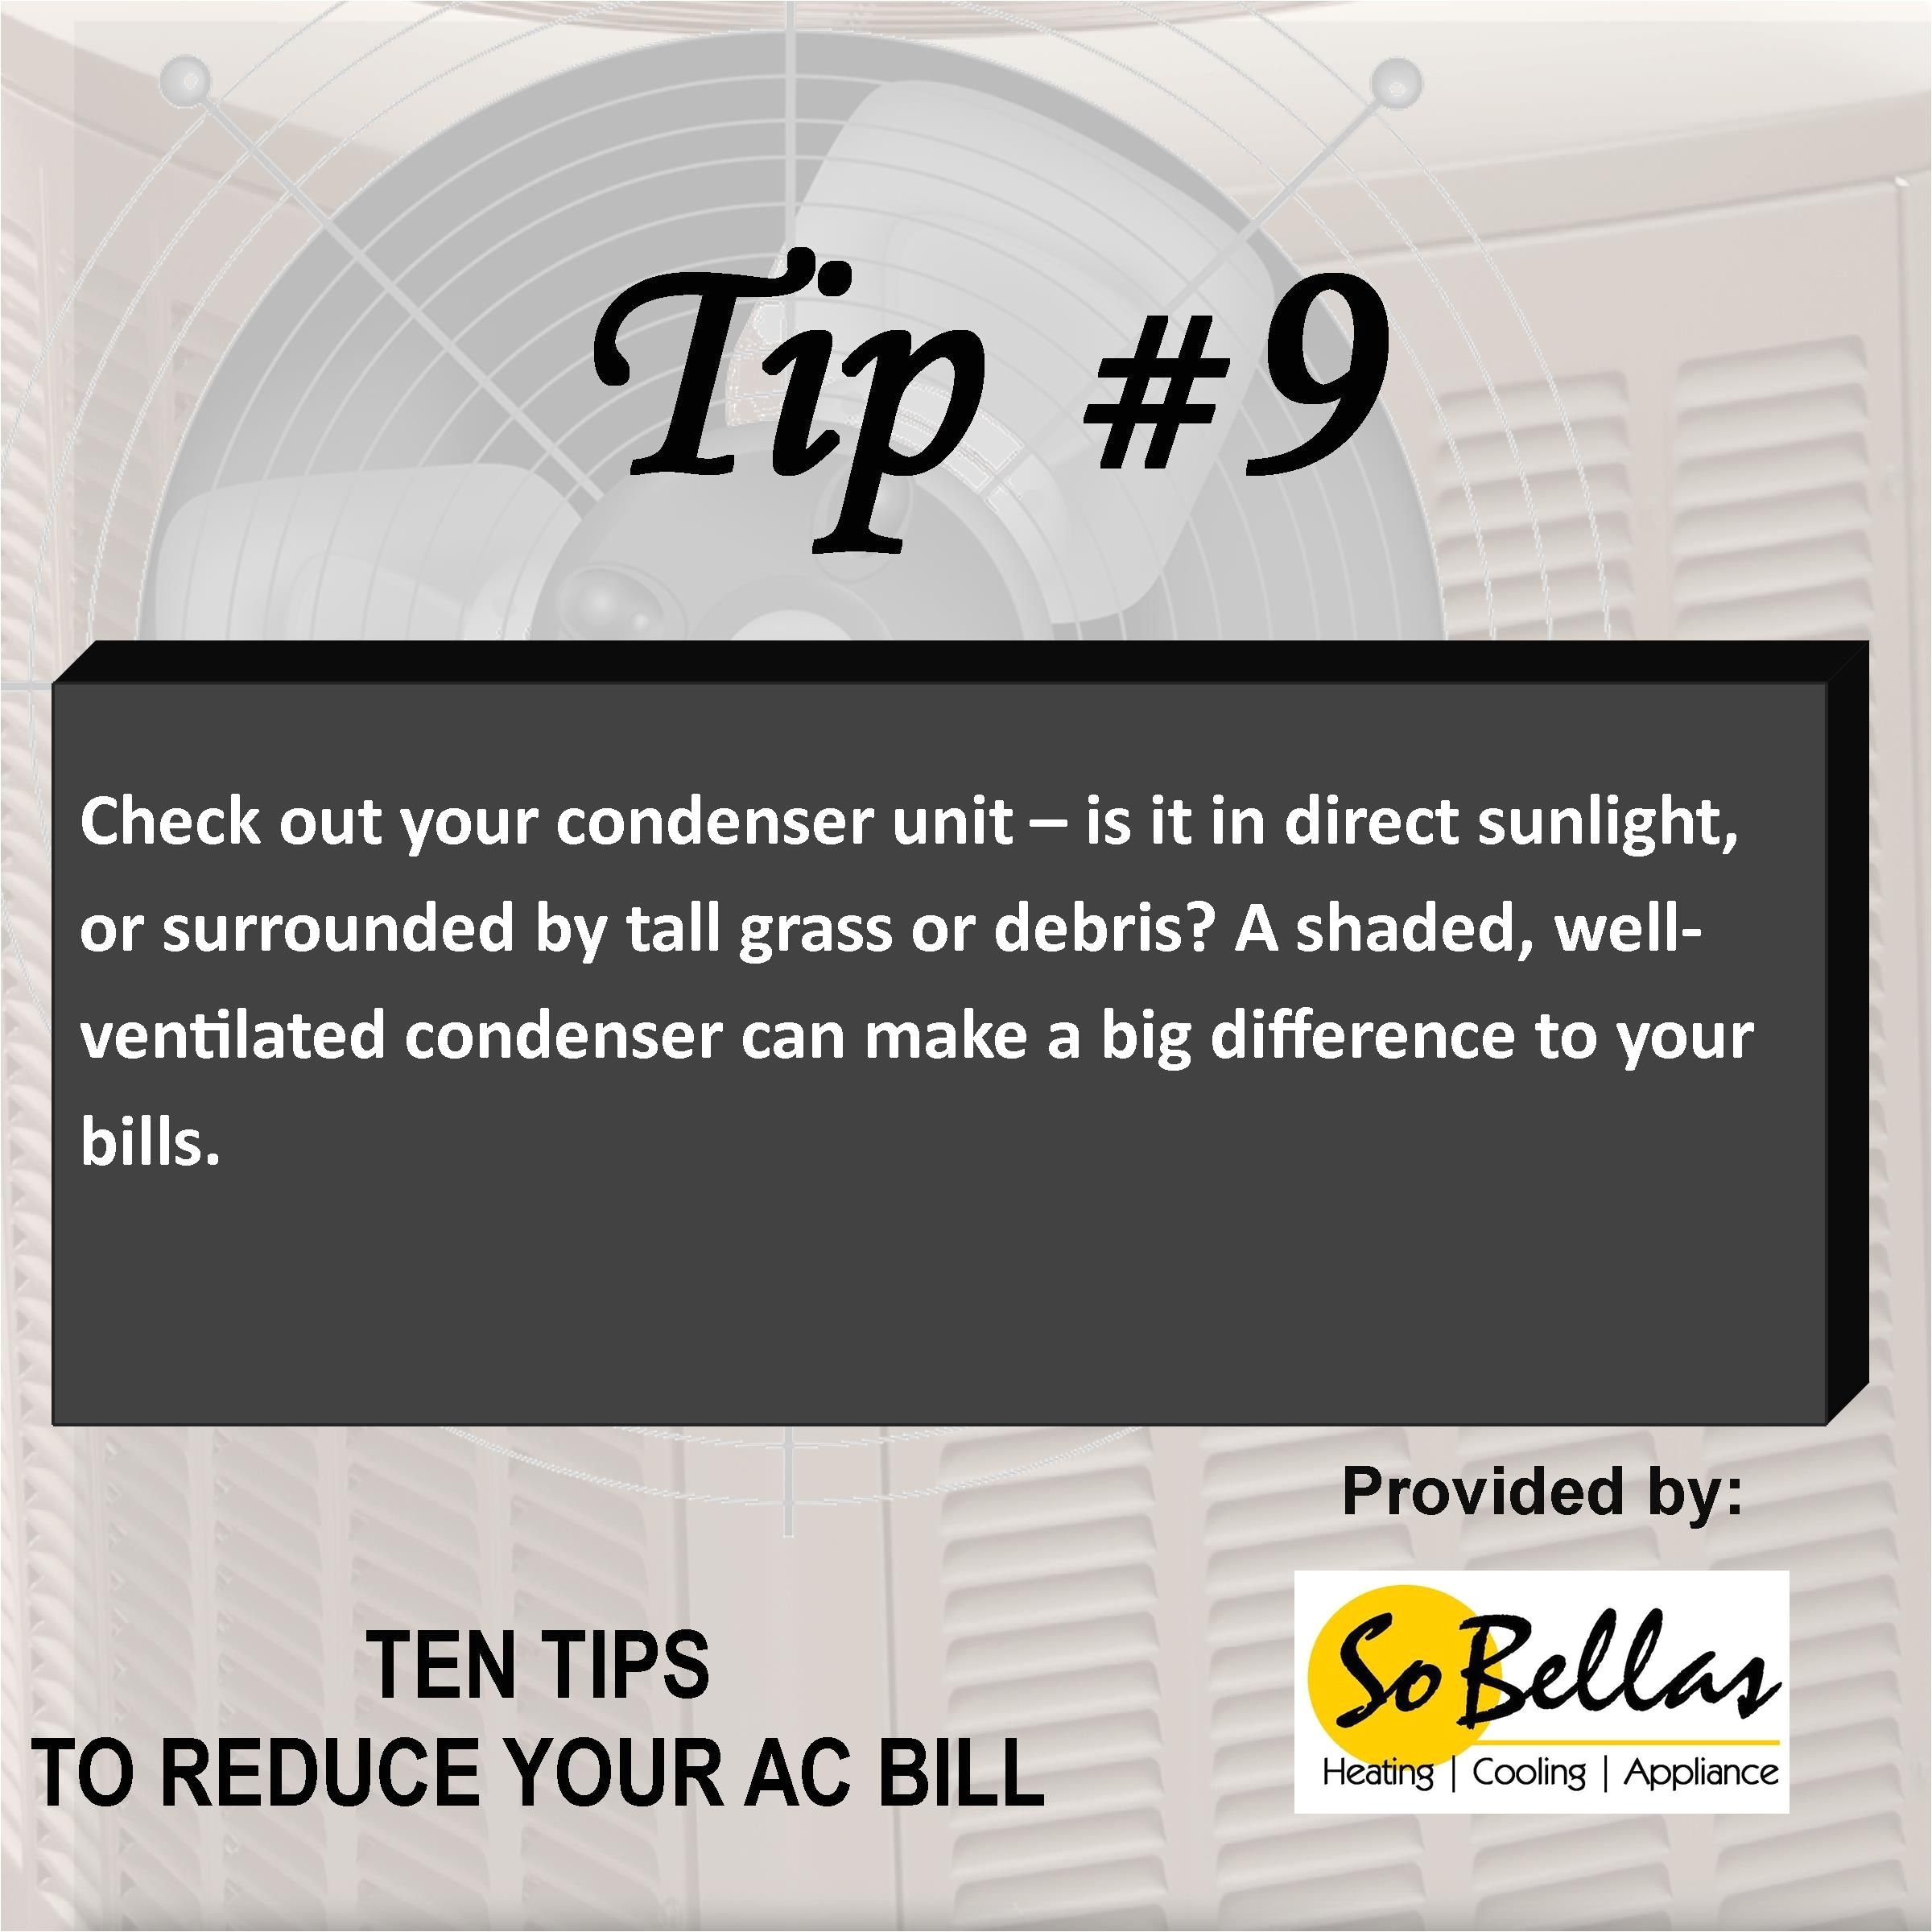 now is the time to think about getting your air conditioning system in shape so you can keep your comfort and keep your utility bills comfortable too